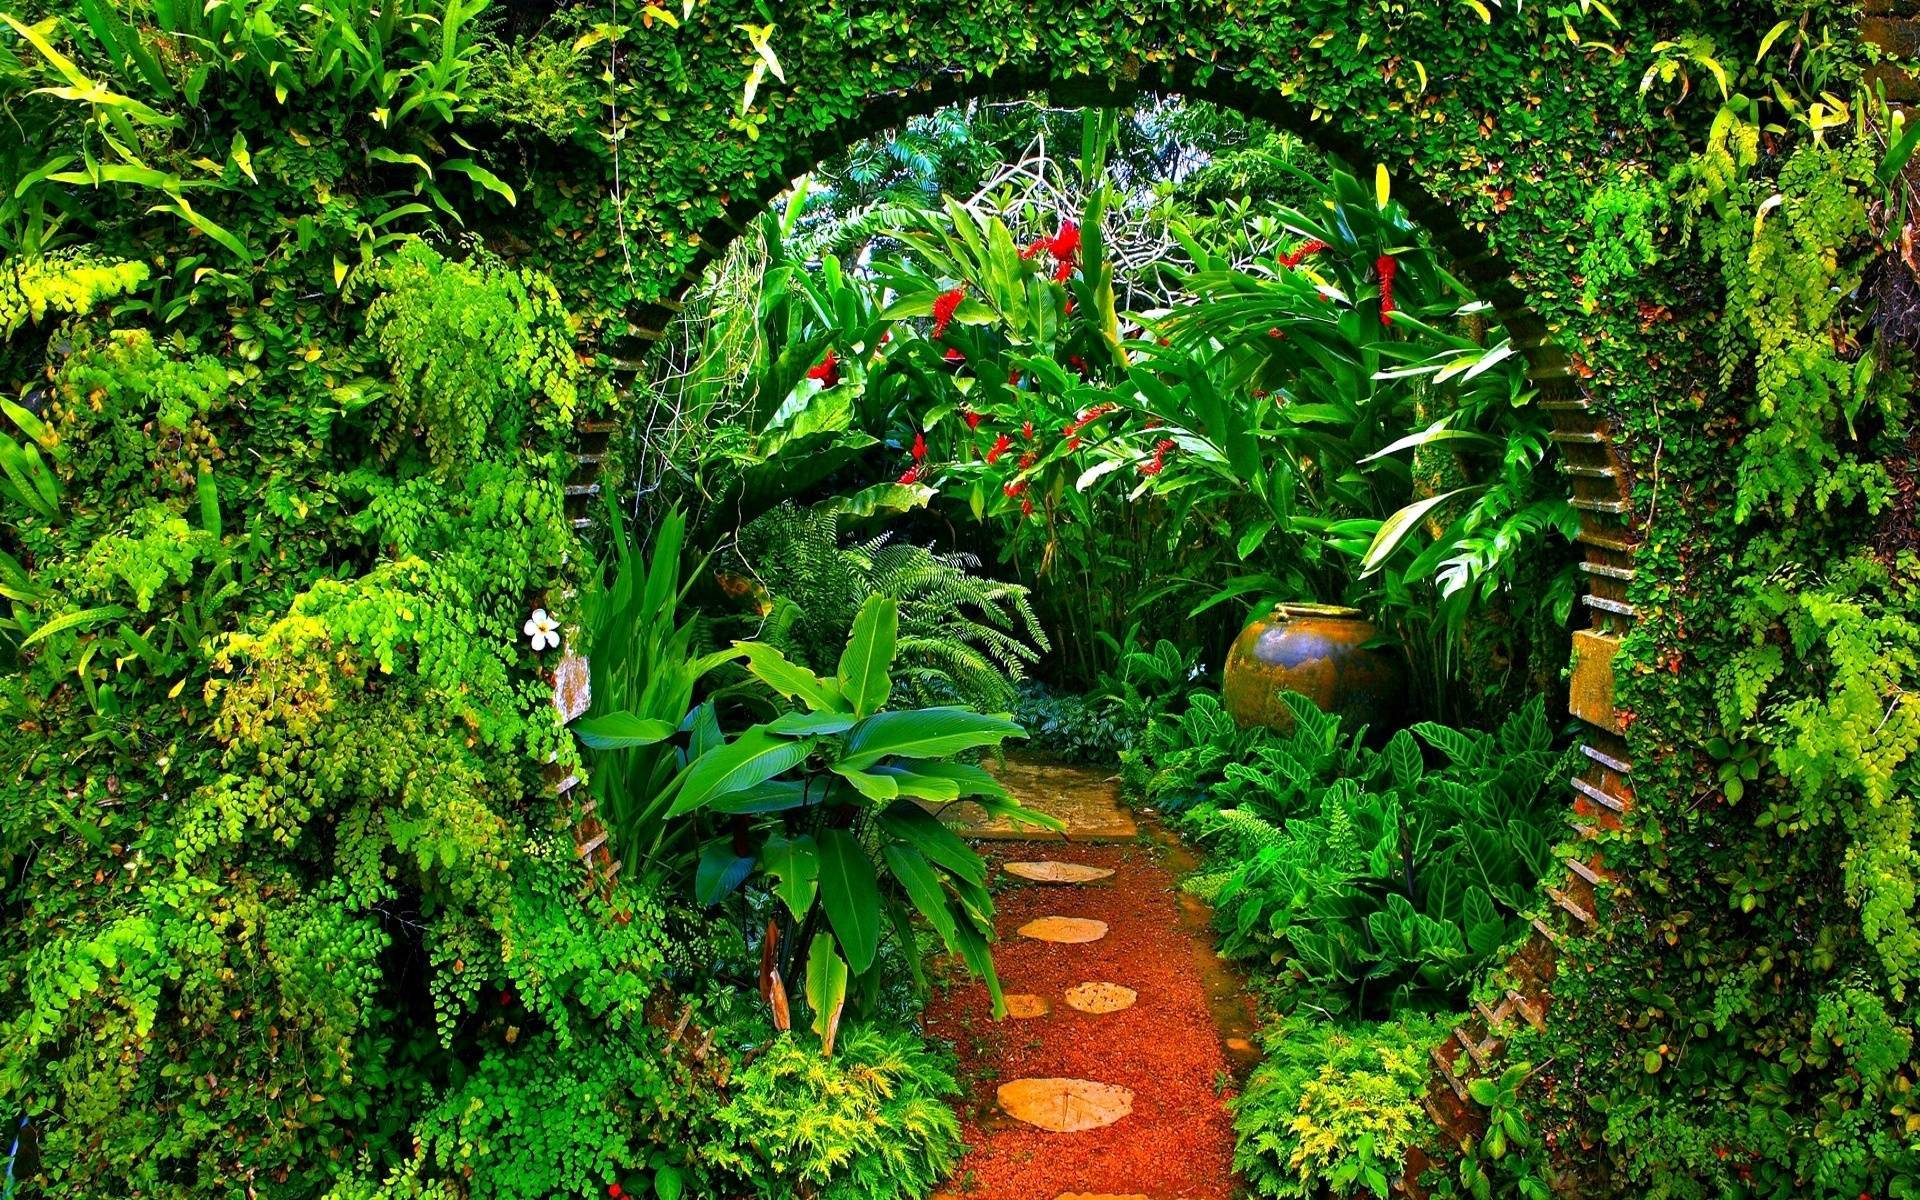 Garden wallpapers wallpaper cave for Wallpaper home and garden